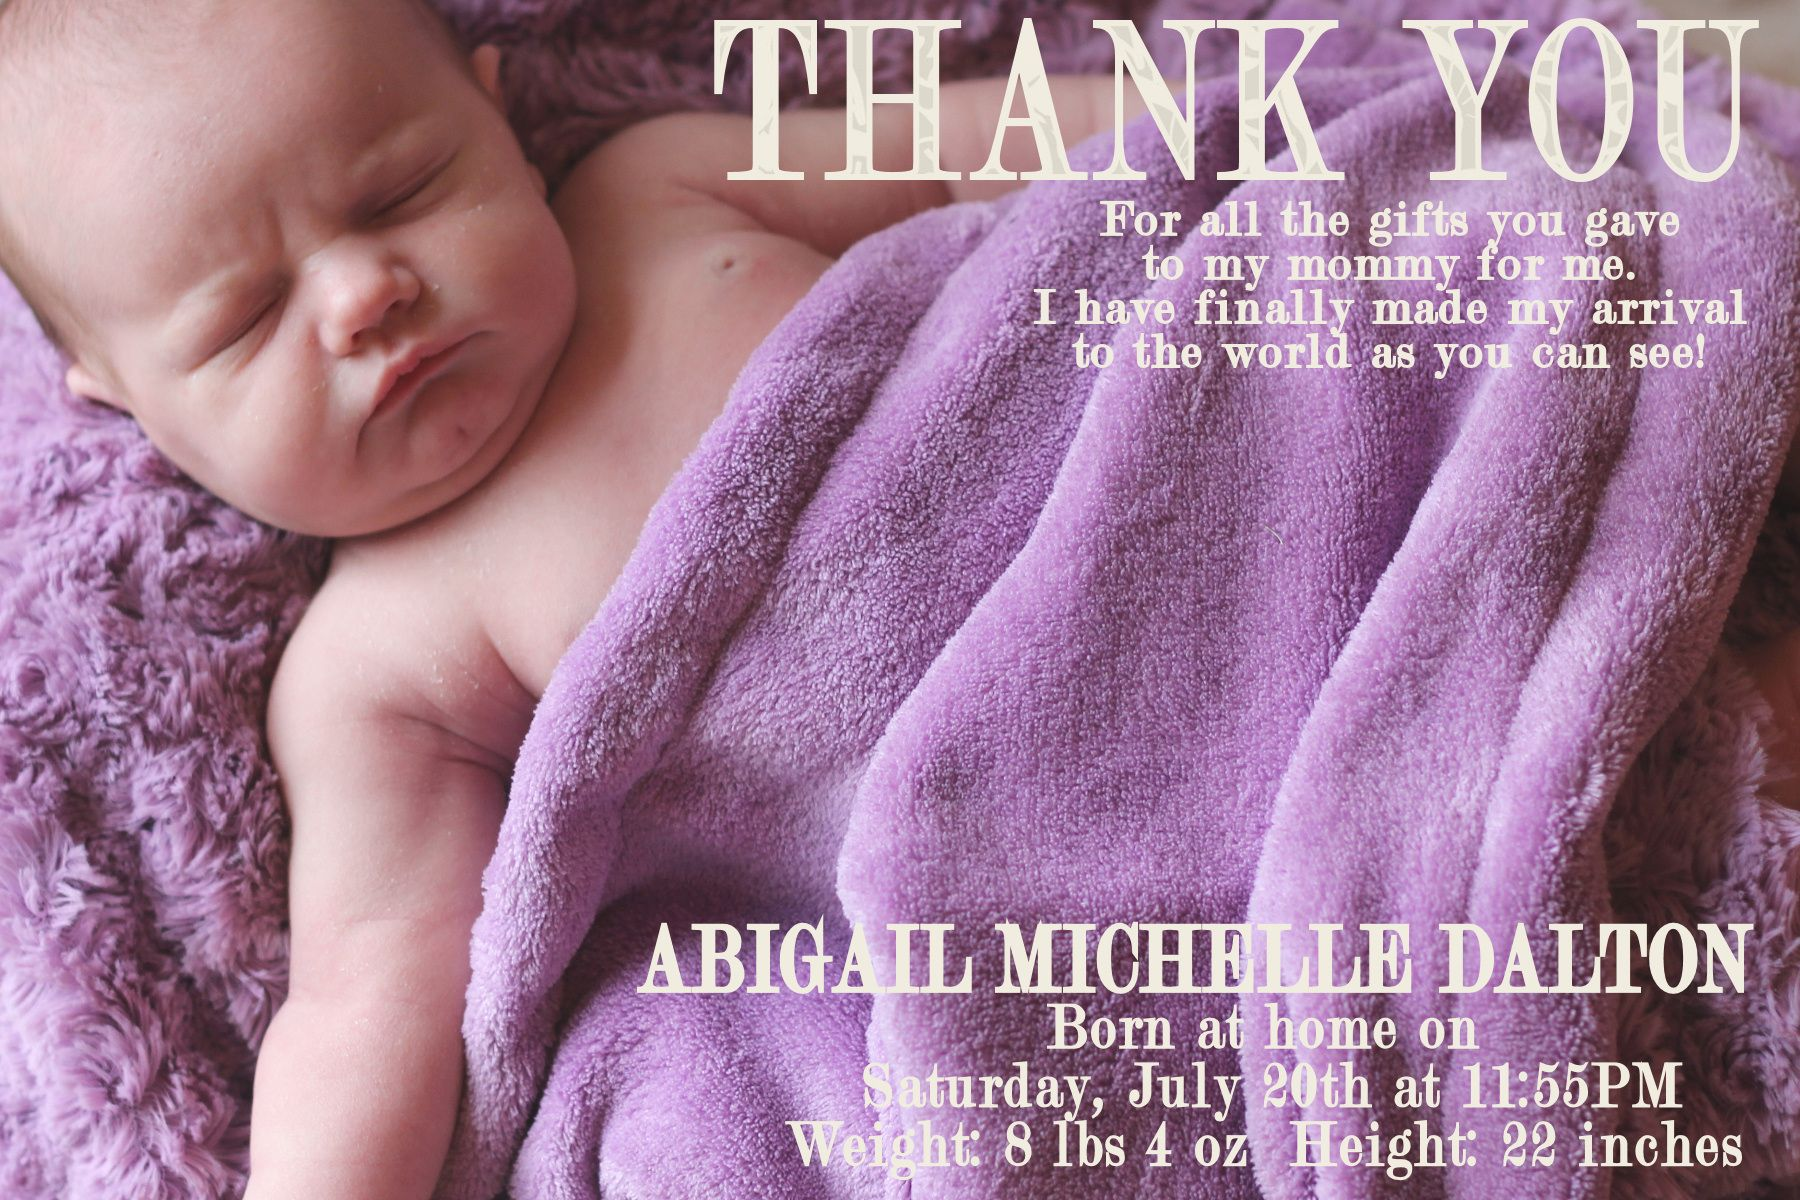 Baby Announcement Thank You Card For Abigail – Birth Announcements and Thank You Cards